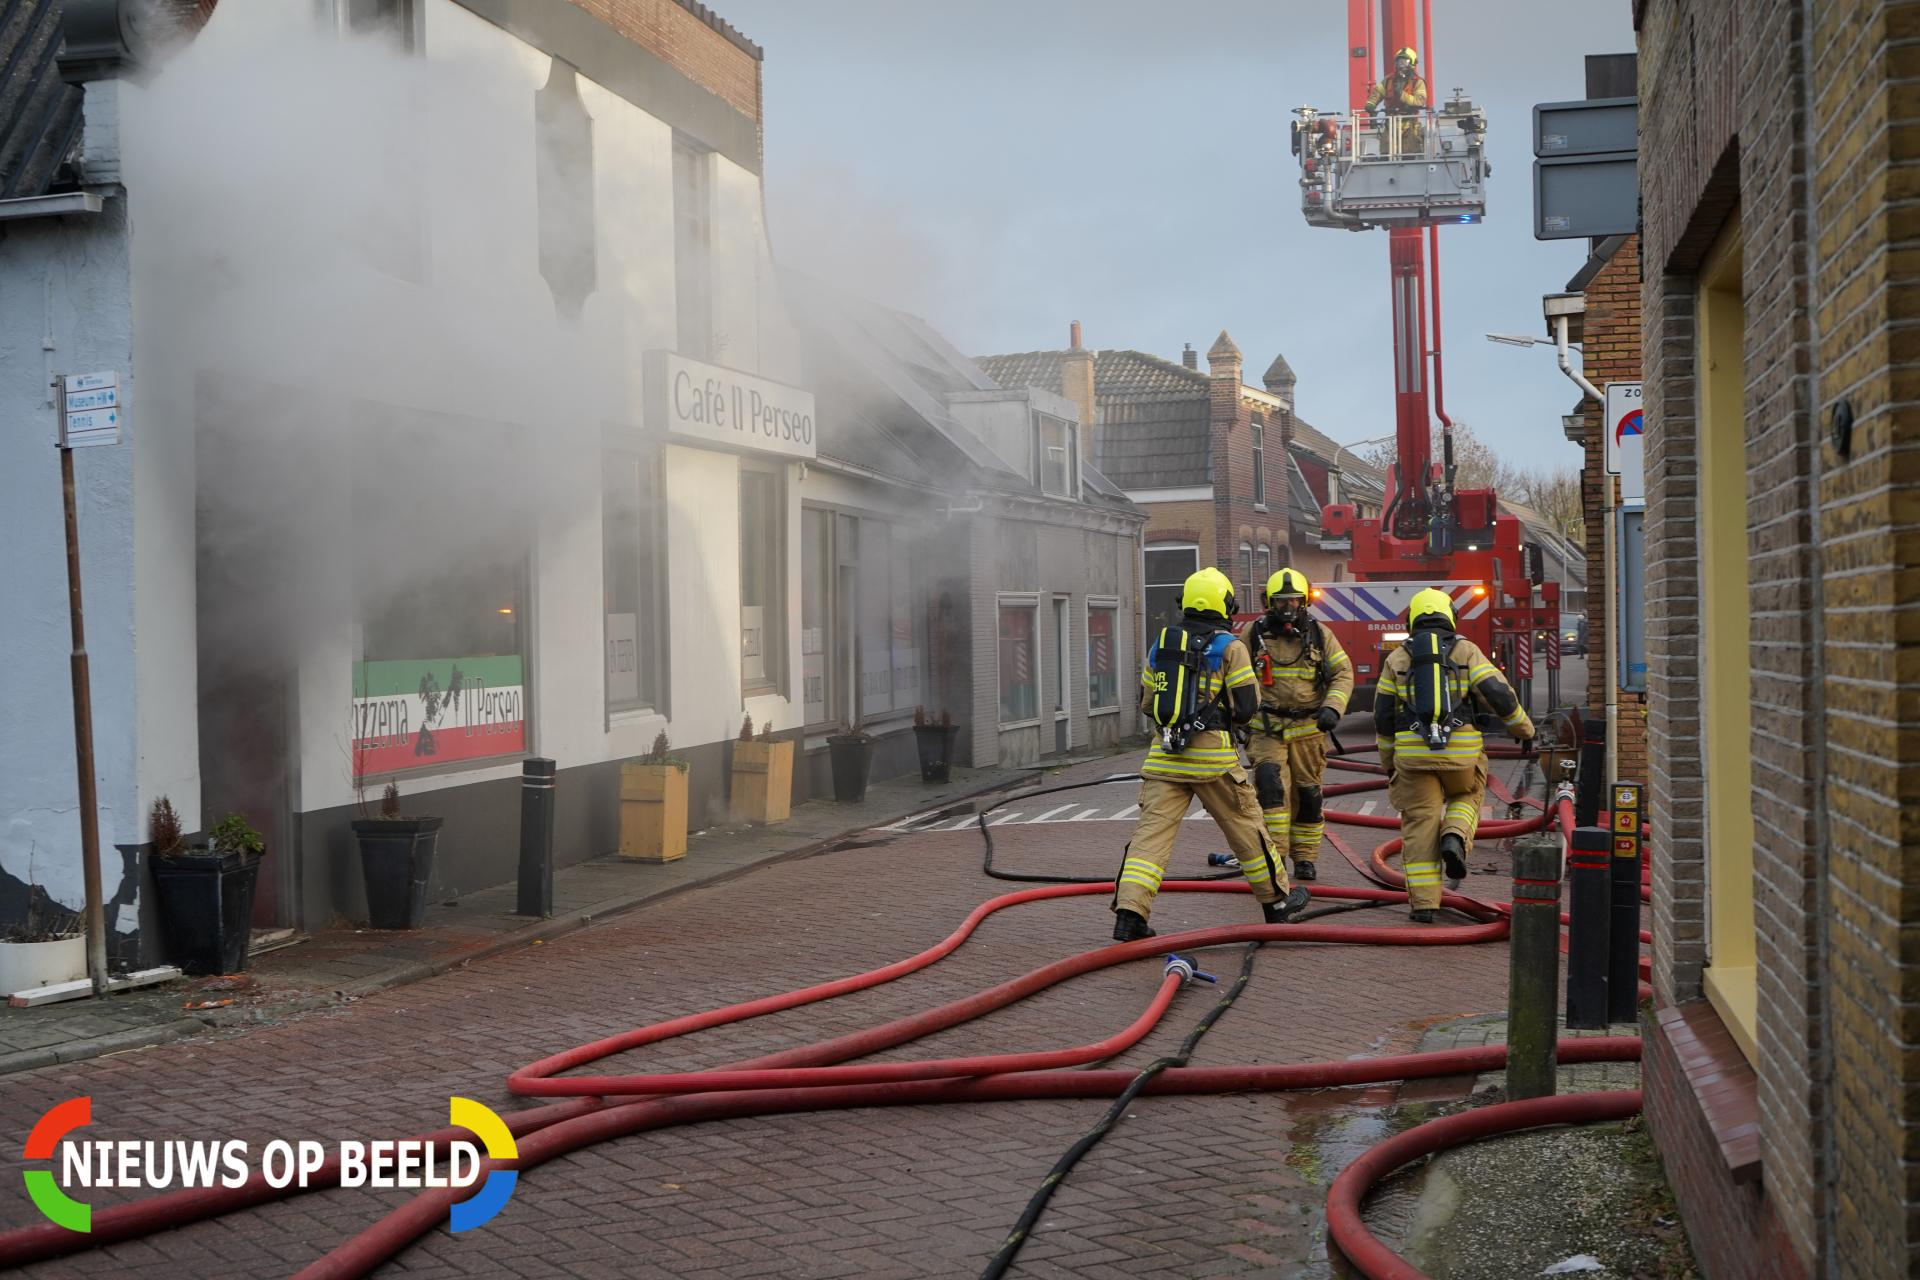 Grote brand in pizzeria Dorpsstraat Heinenoord (video)